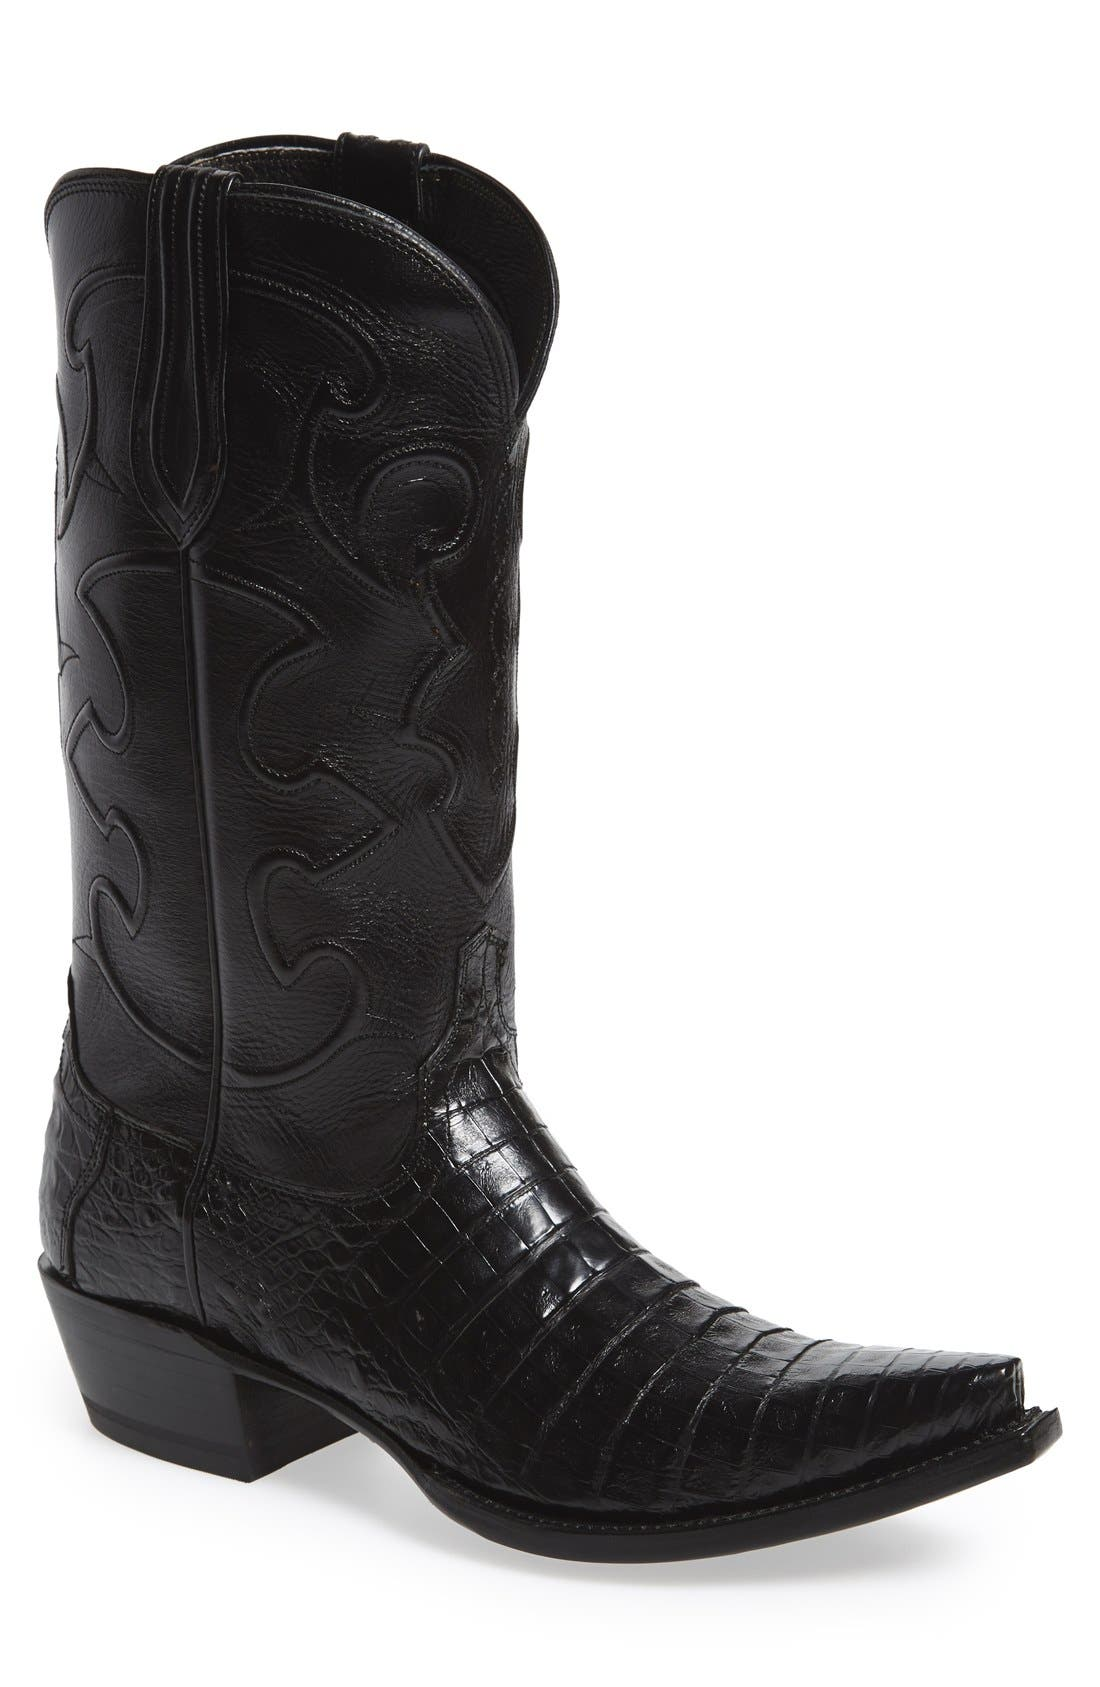 LUCCHESE 'Charles' Calfskin & Genuine Crocodile Leather Snip Toe Western Boot, Main, color, 002